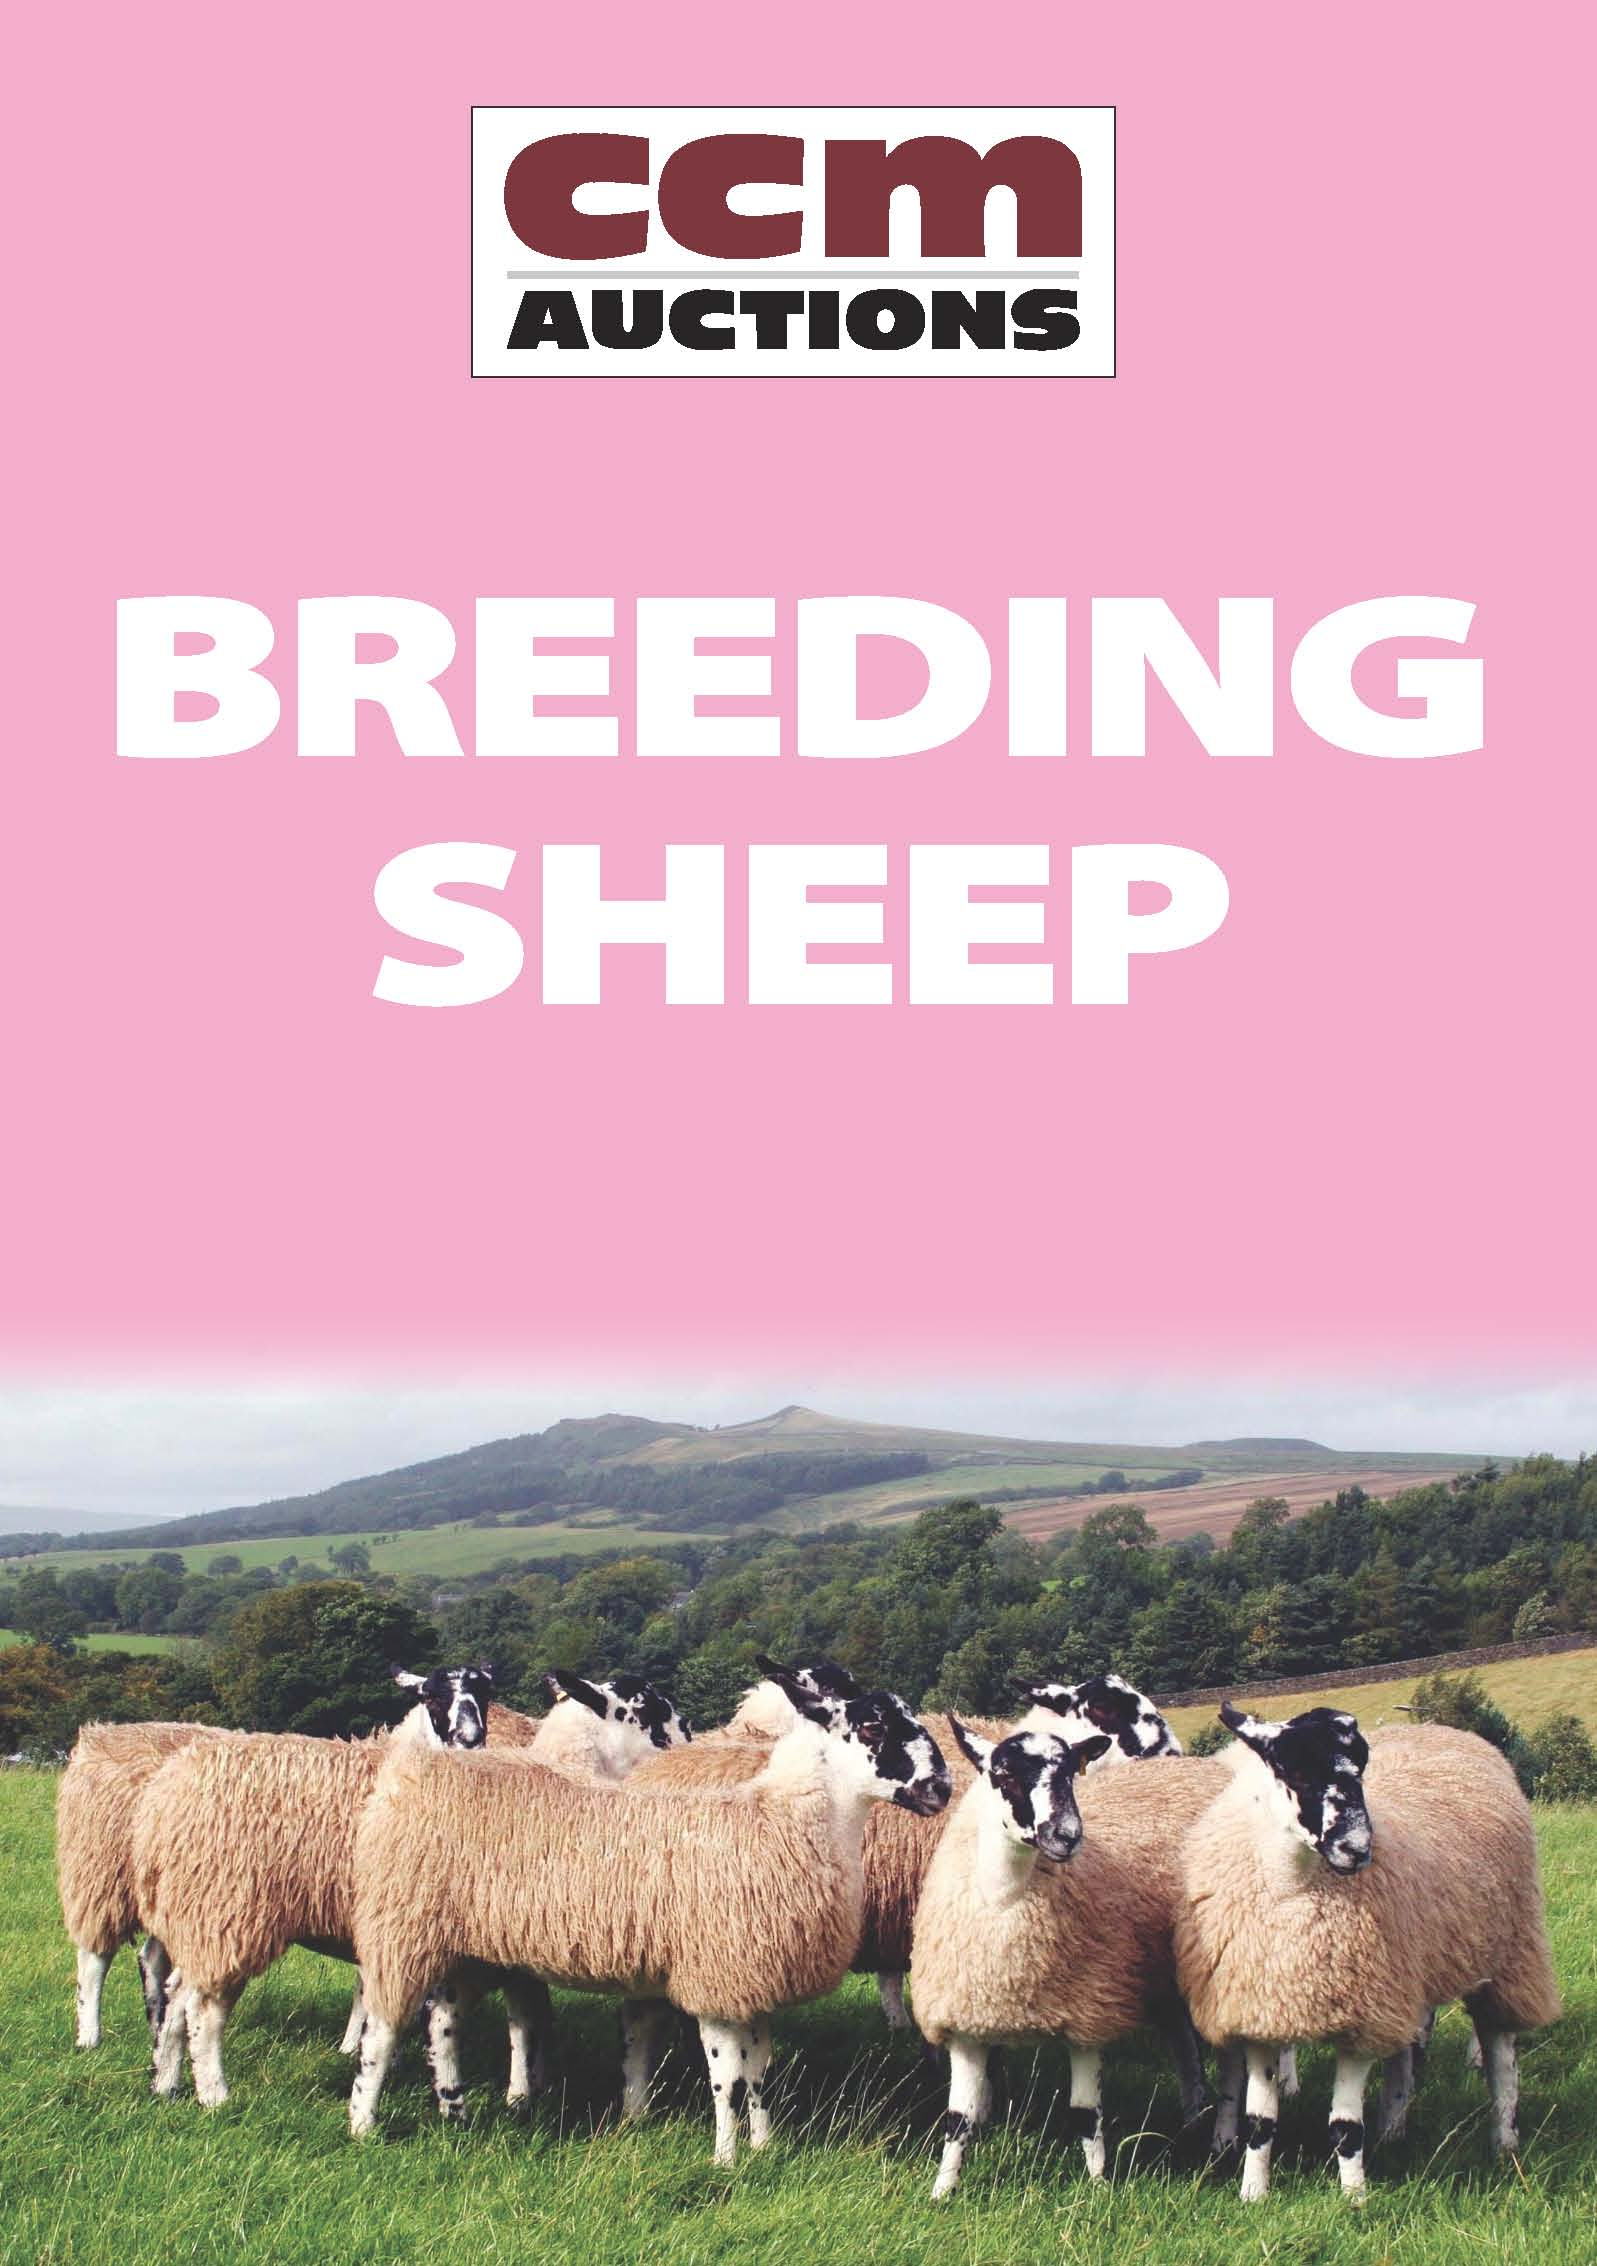 BREEDING SHEEP - MONDAY 24TH APRIL 2017